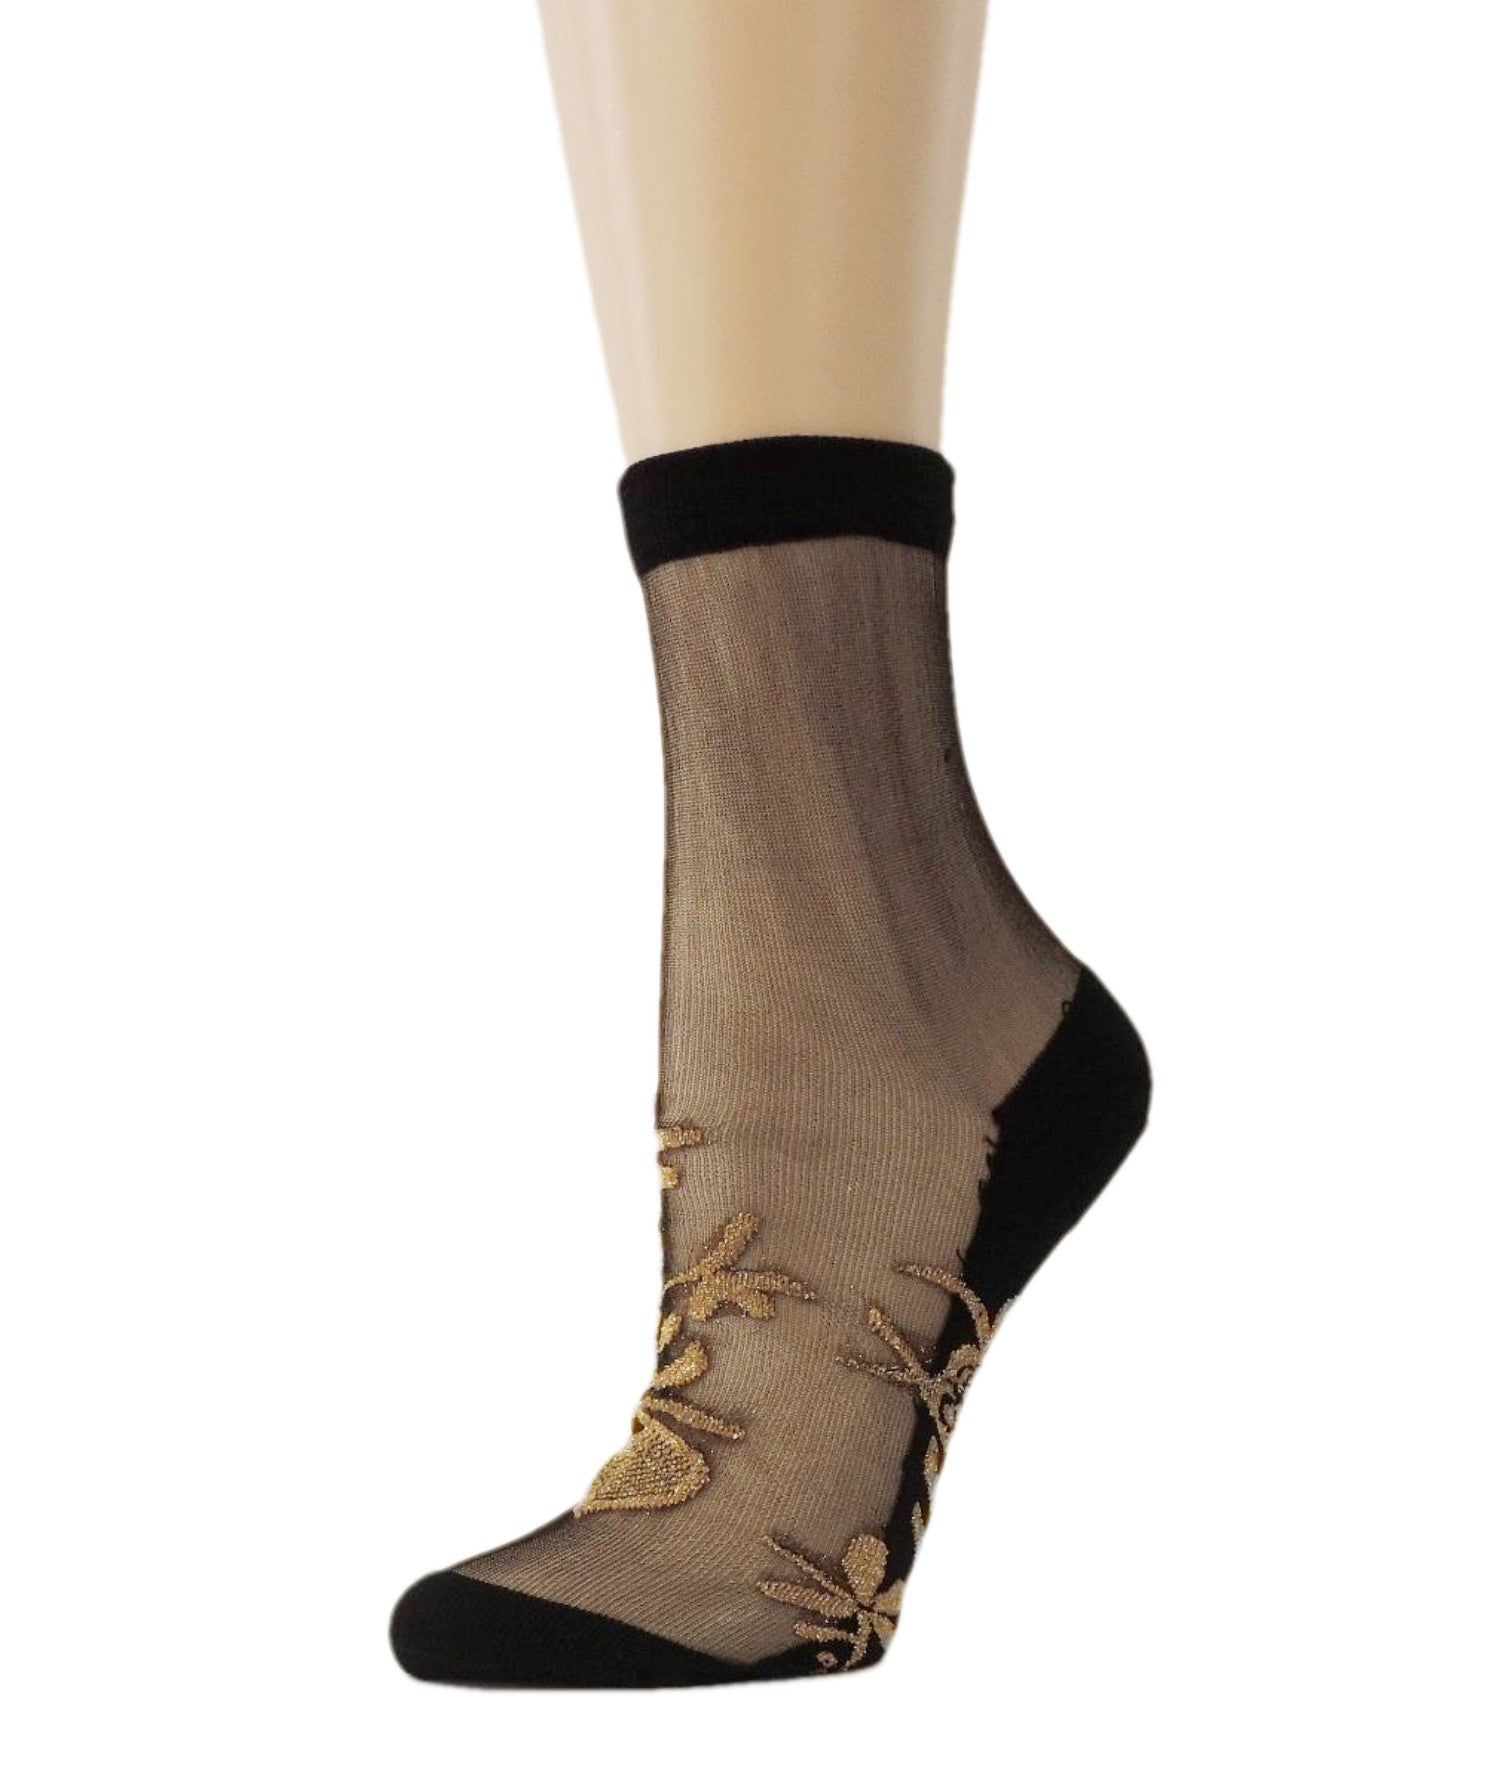 Golden Patterned Glitter Sheer Socks - Global Trendz Fashion®